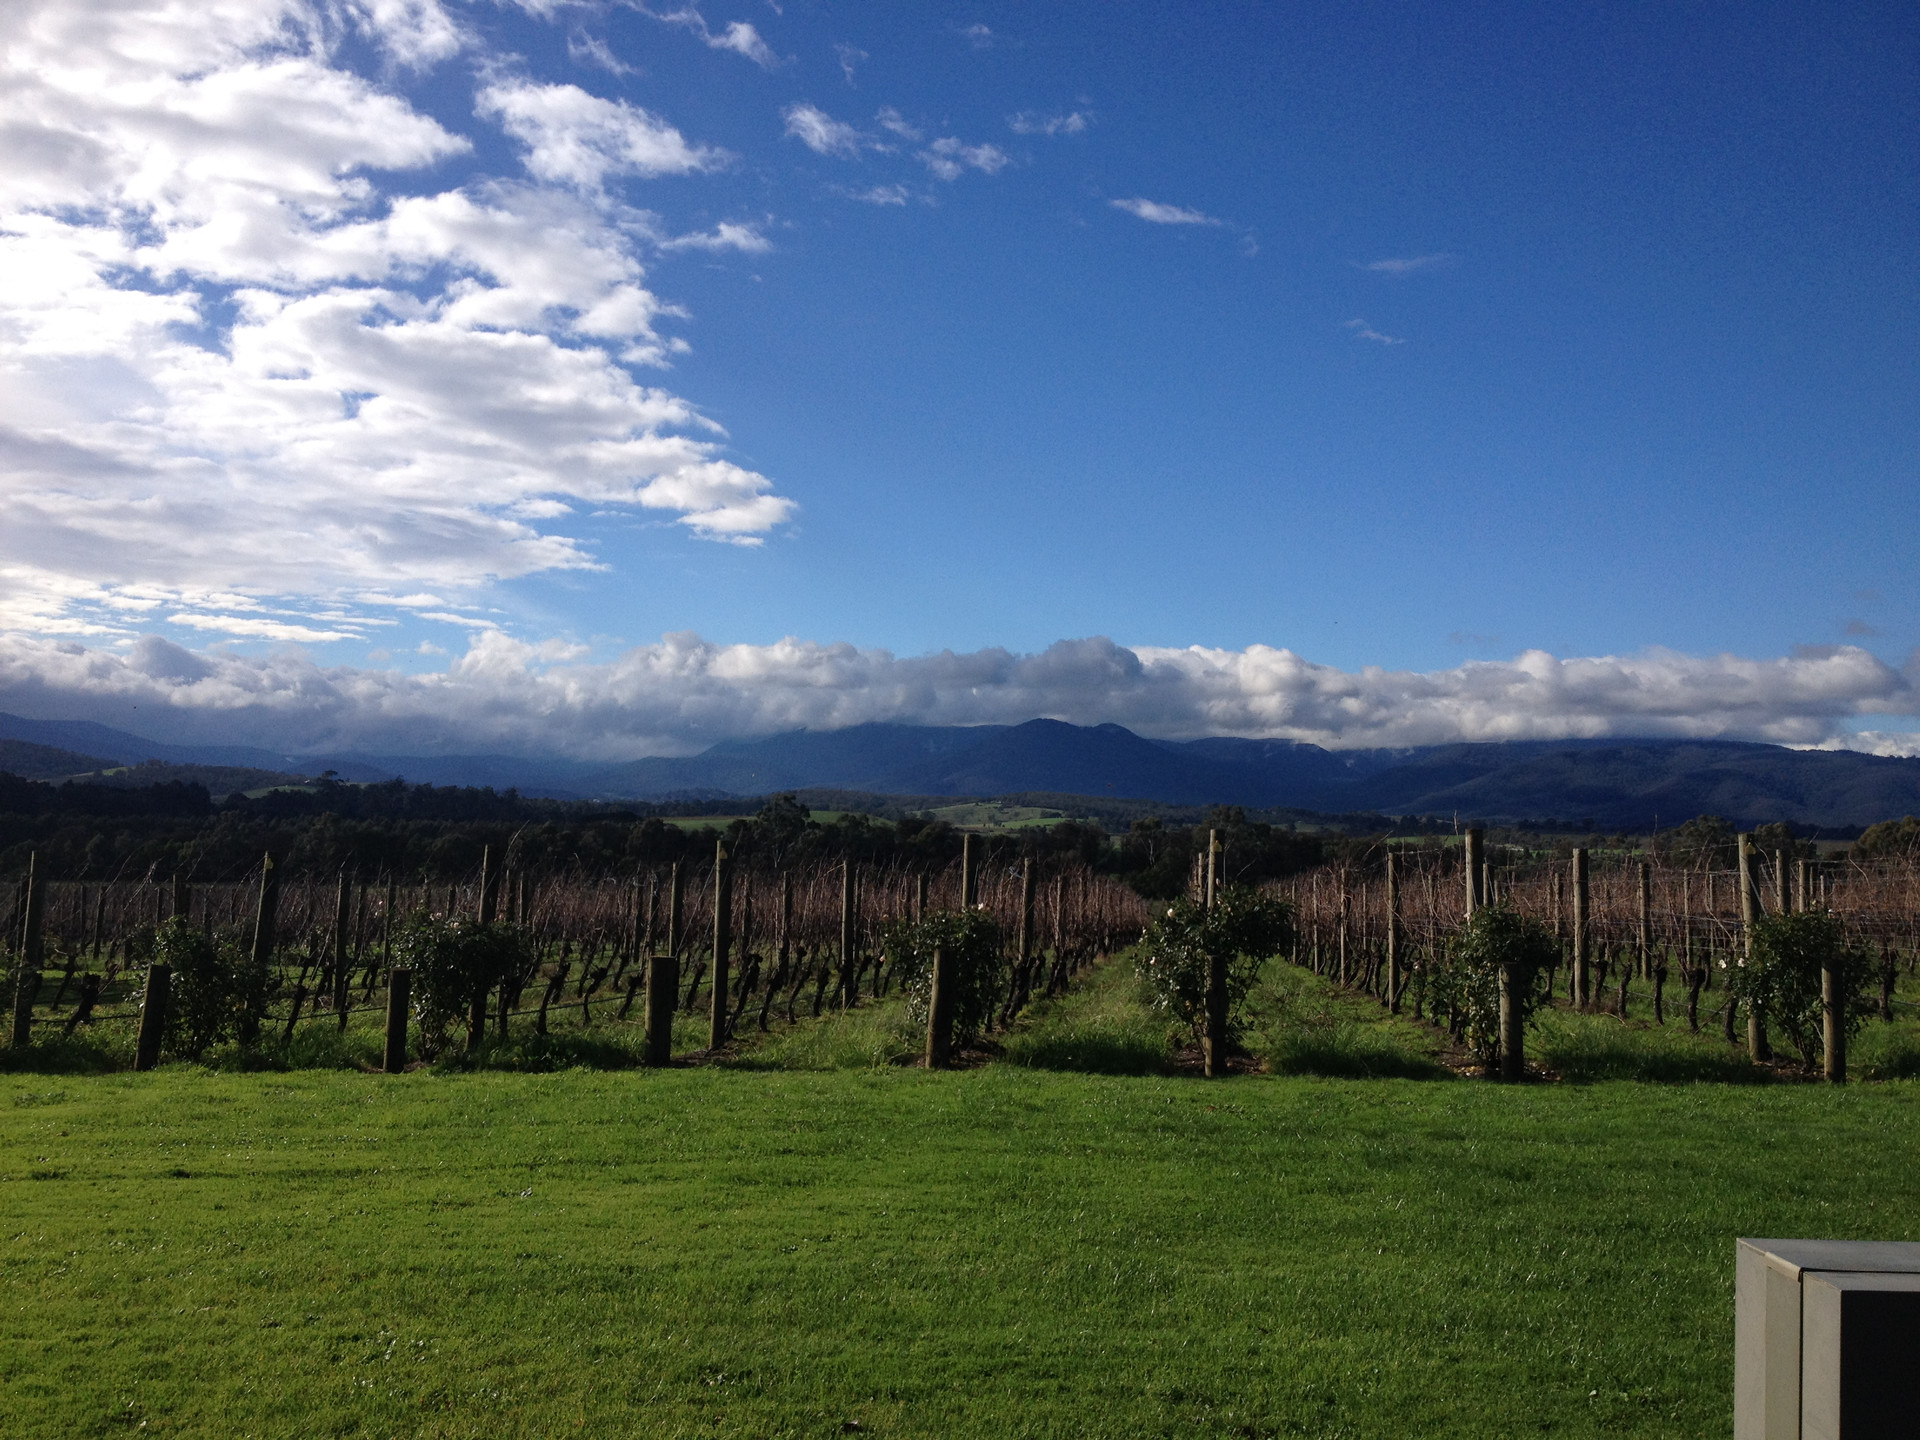 Yarra Valley wine region in Victoria